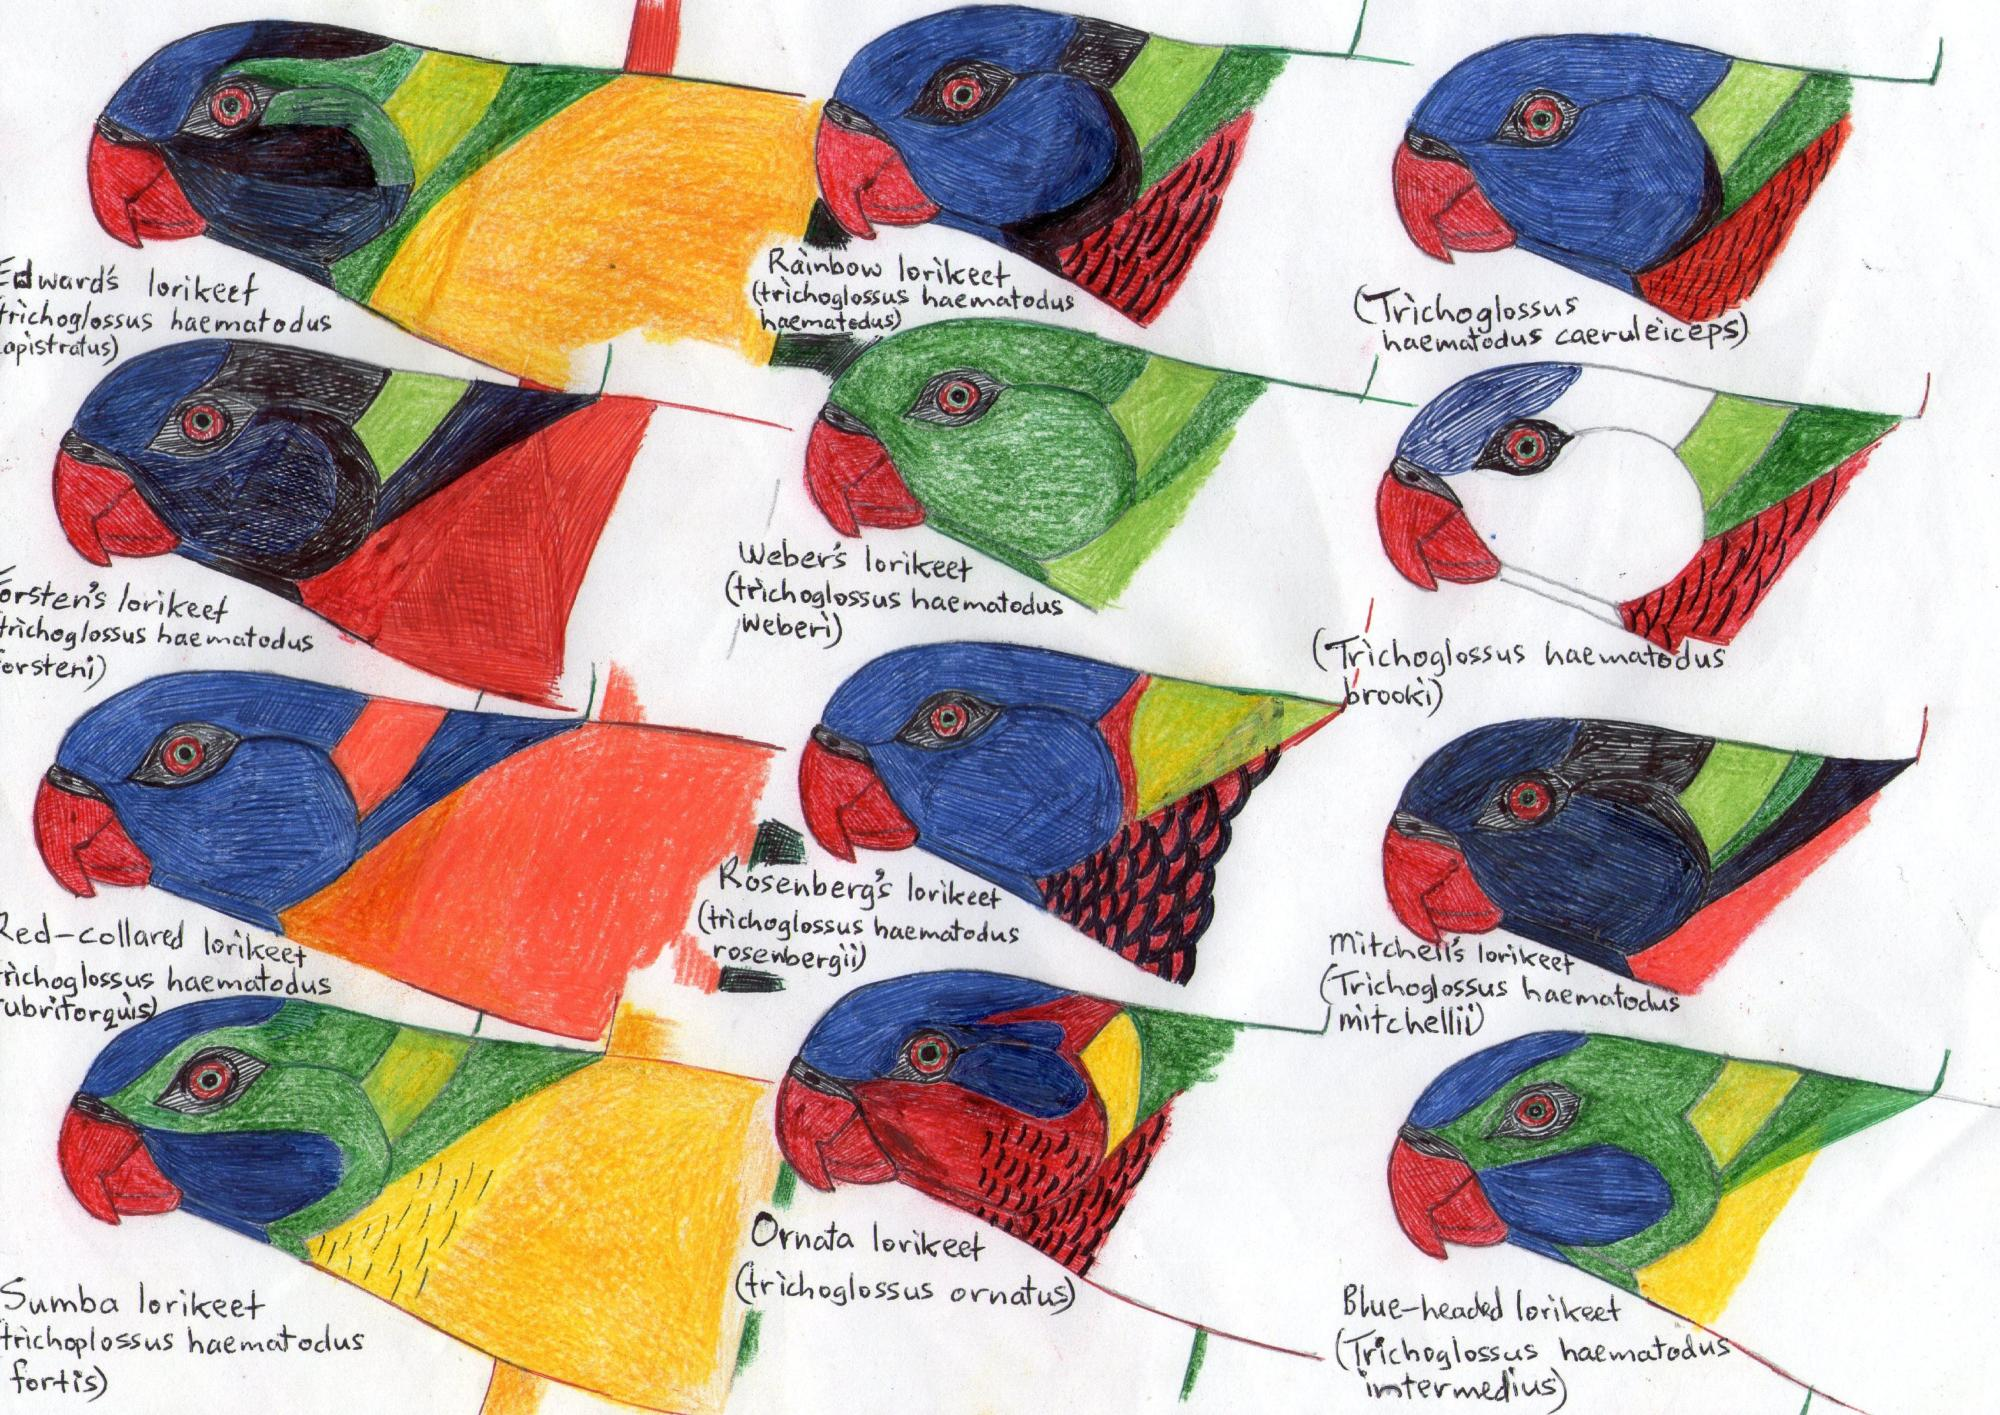 Heads of subspecies of rainbow lorikeets.